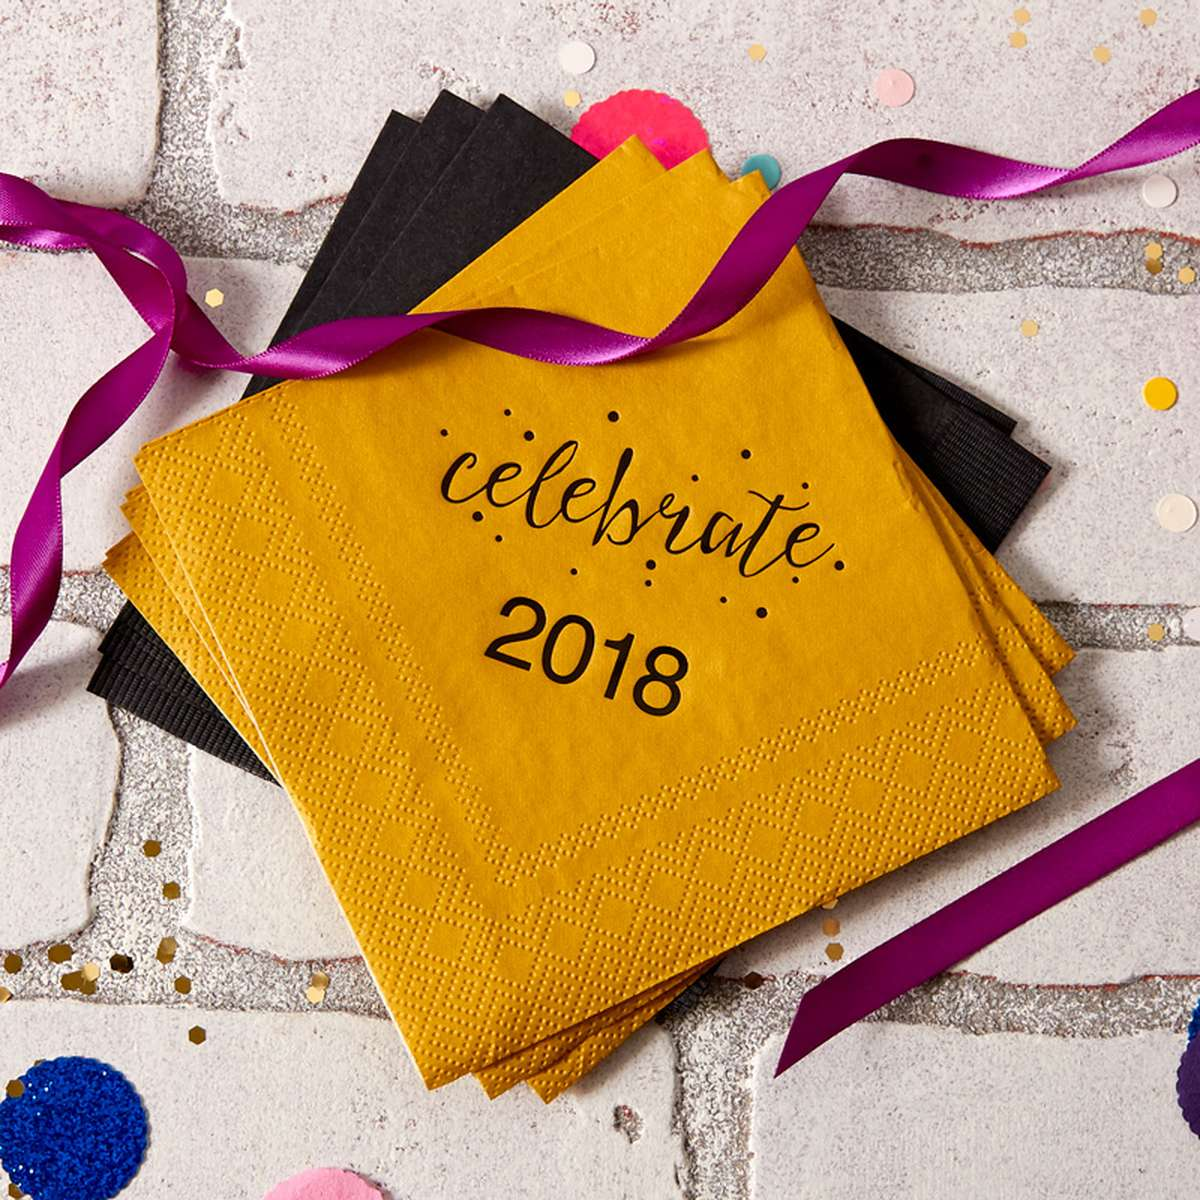 2018 personalized cocktail napkins